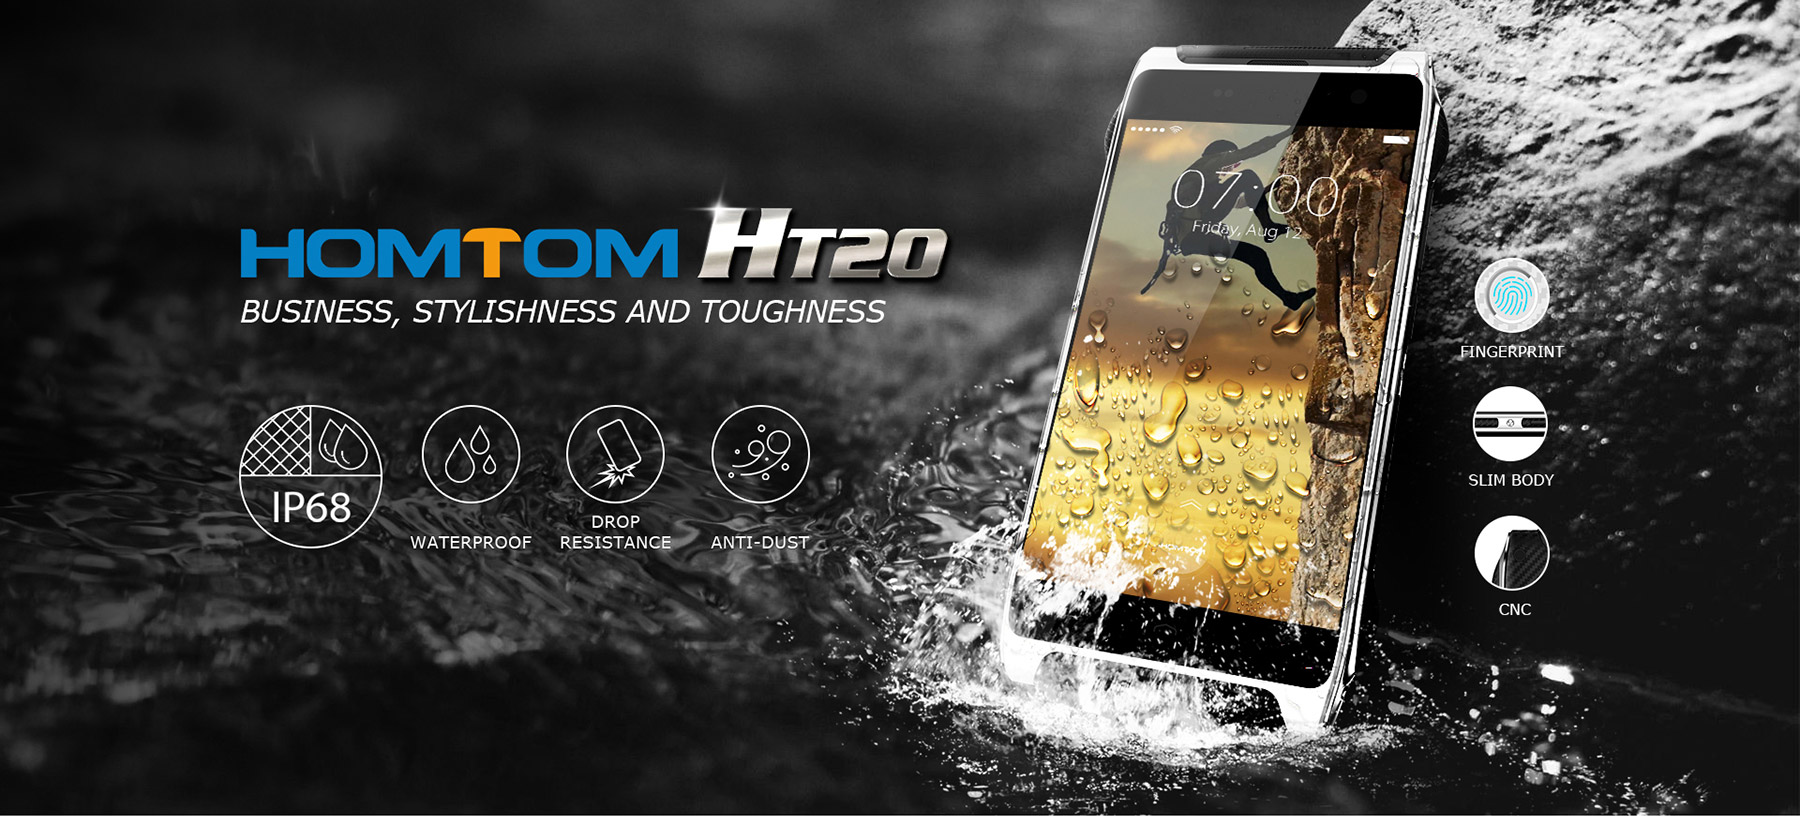 Homtom HT20 Android 6.0 4.7 inch 4G Smartphone MTK6737 Quad Core 1.3GHz 2GB RAM 16GB ROM Fingerprint Scanner Waterproof IP68 Bluetooth 4.0 HotKnot